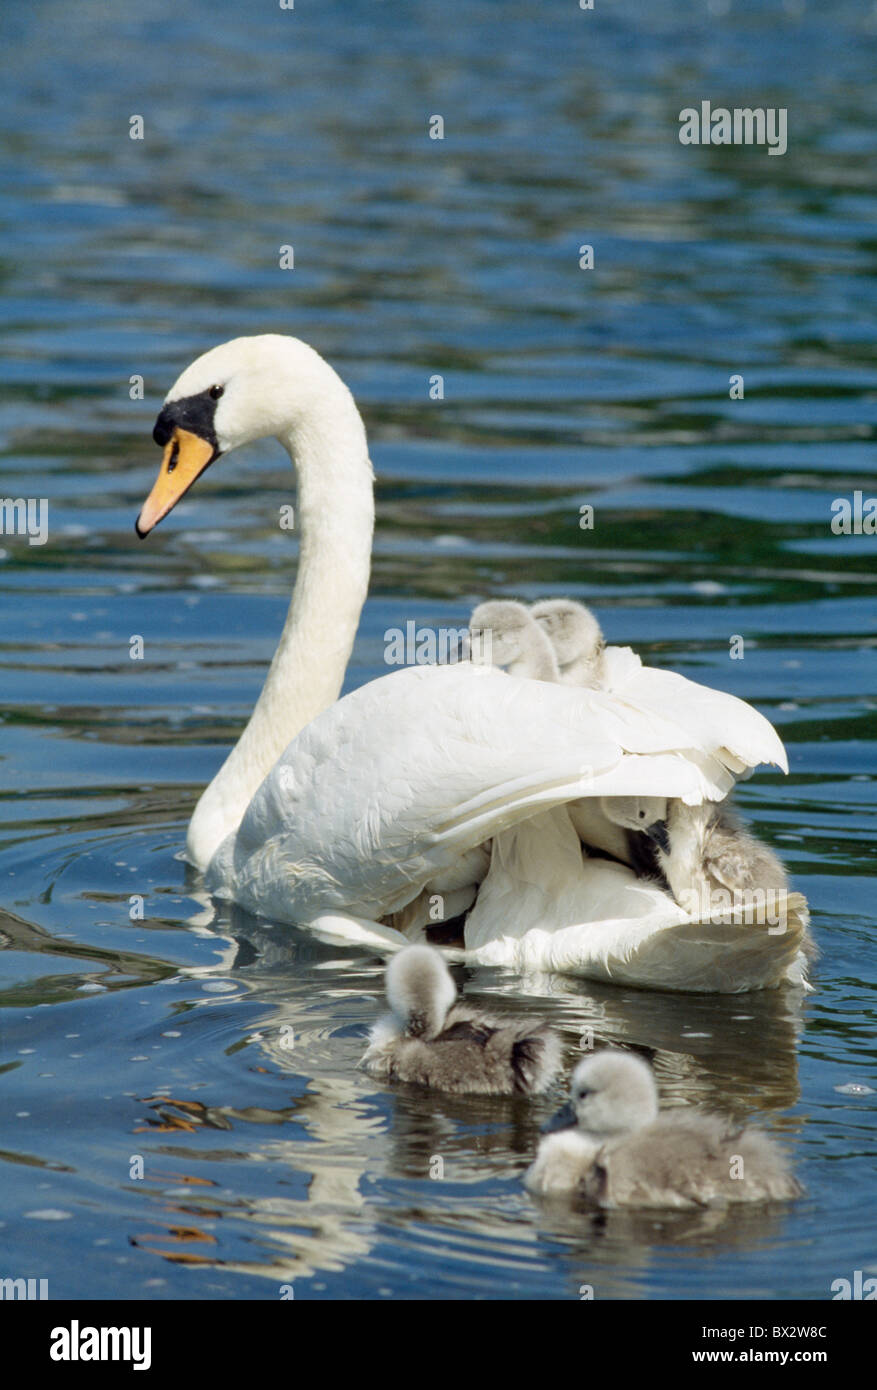 Swan And Cygnets, Clonmel, Co Tipperary, Ireland - Stock Image